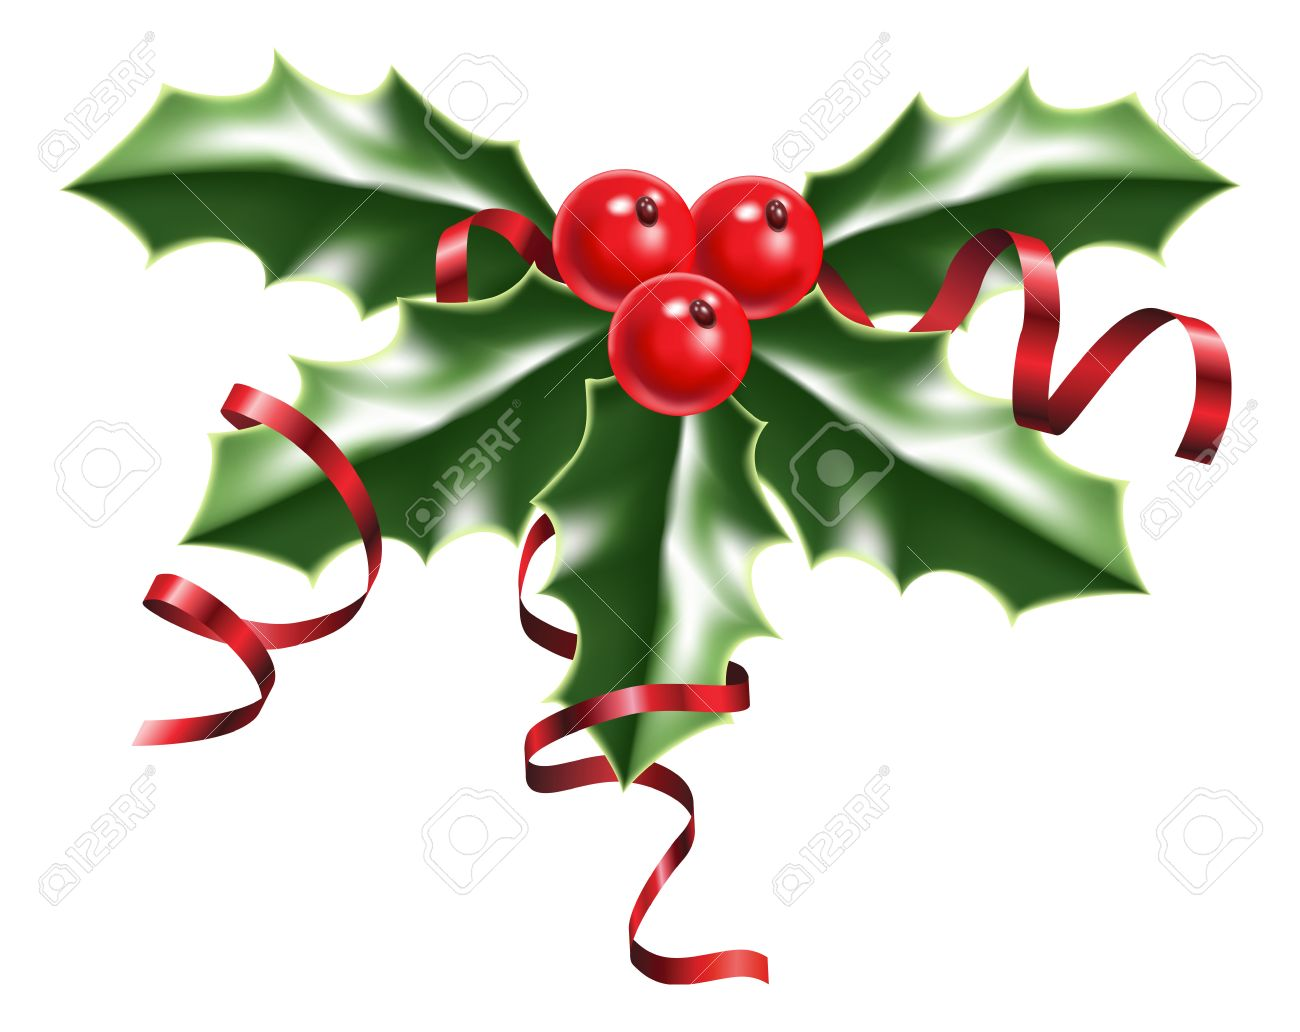 Free holly berry clipart image free Picture Of Holly Berries | Free download best Picture Of Holly ... image free